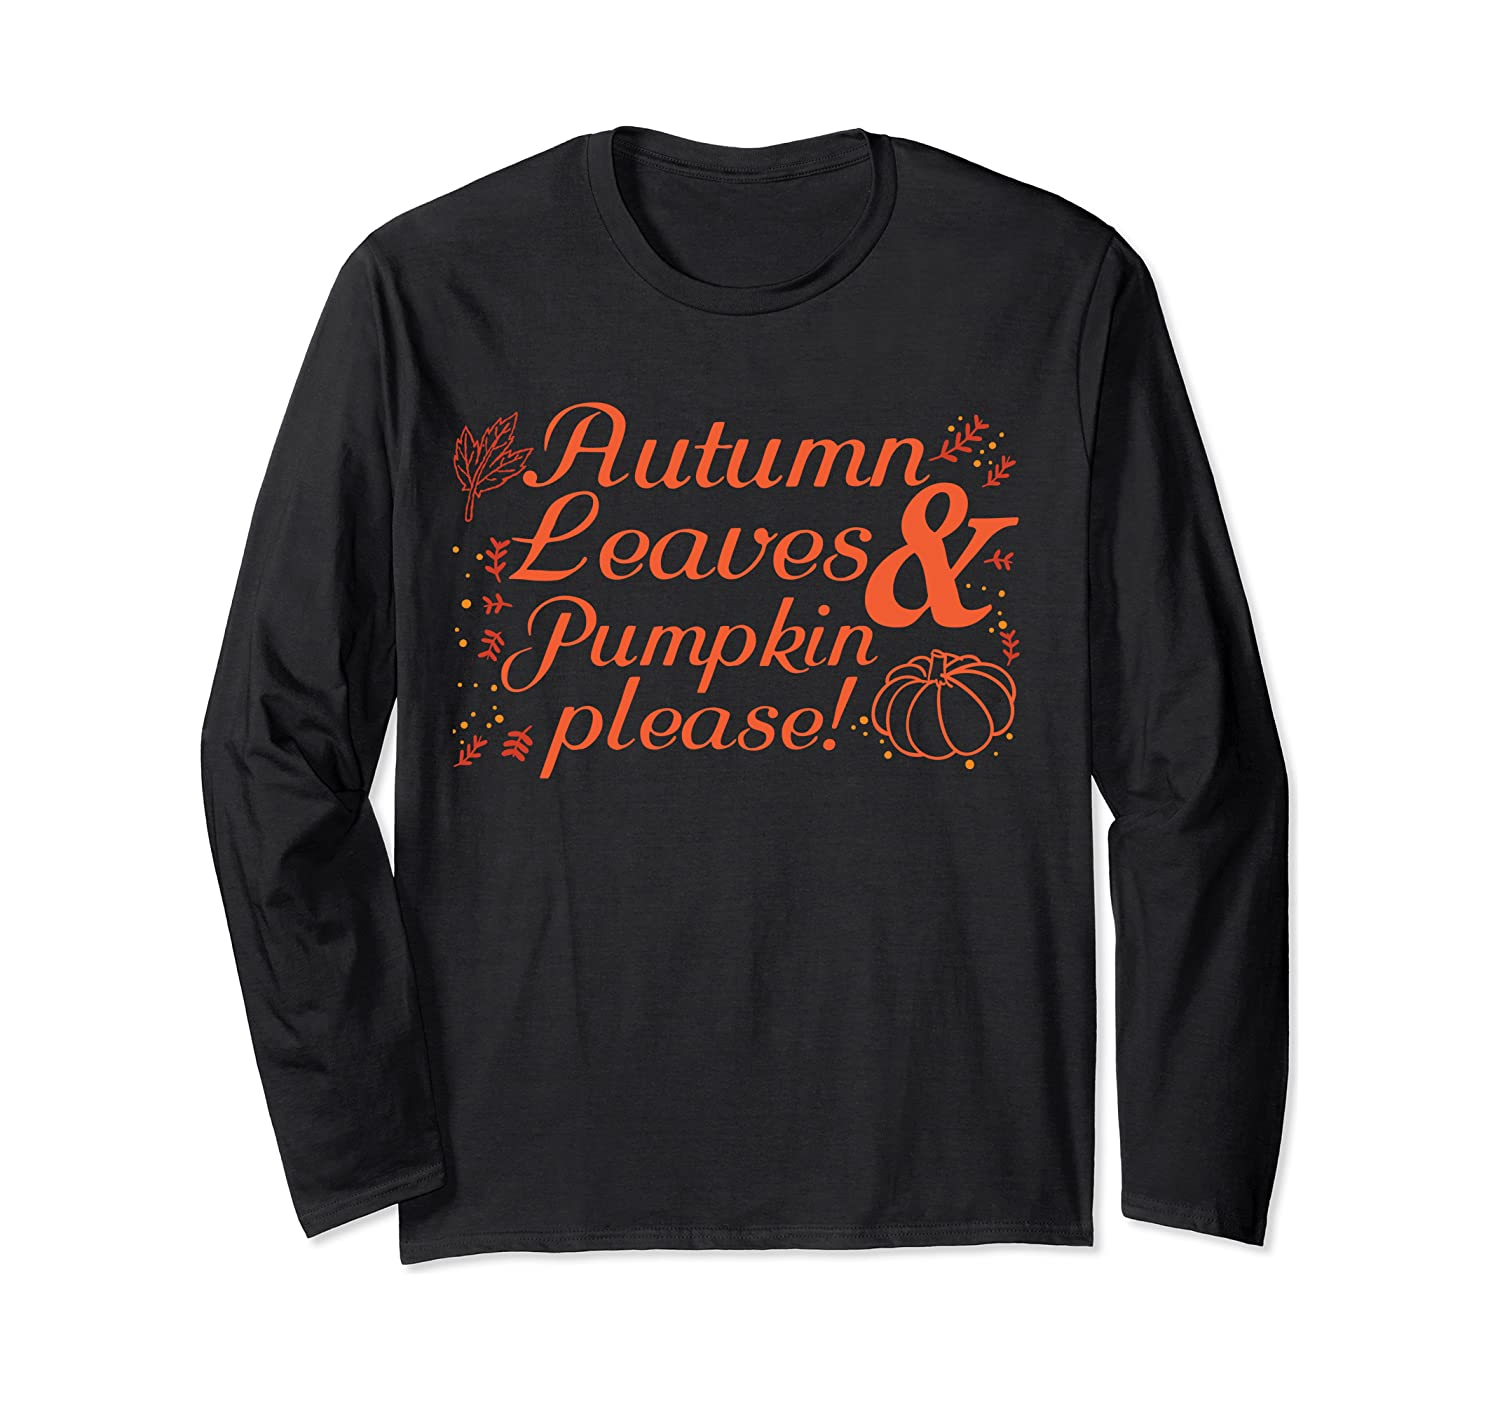 Autumn Leaves and Pumpkins Please Shirt,It's Happy Fall Yall Long Sleeve T-Shirt